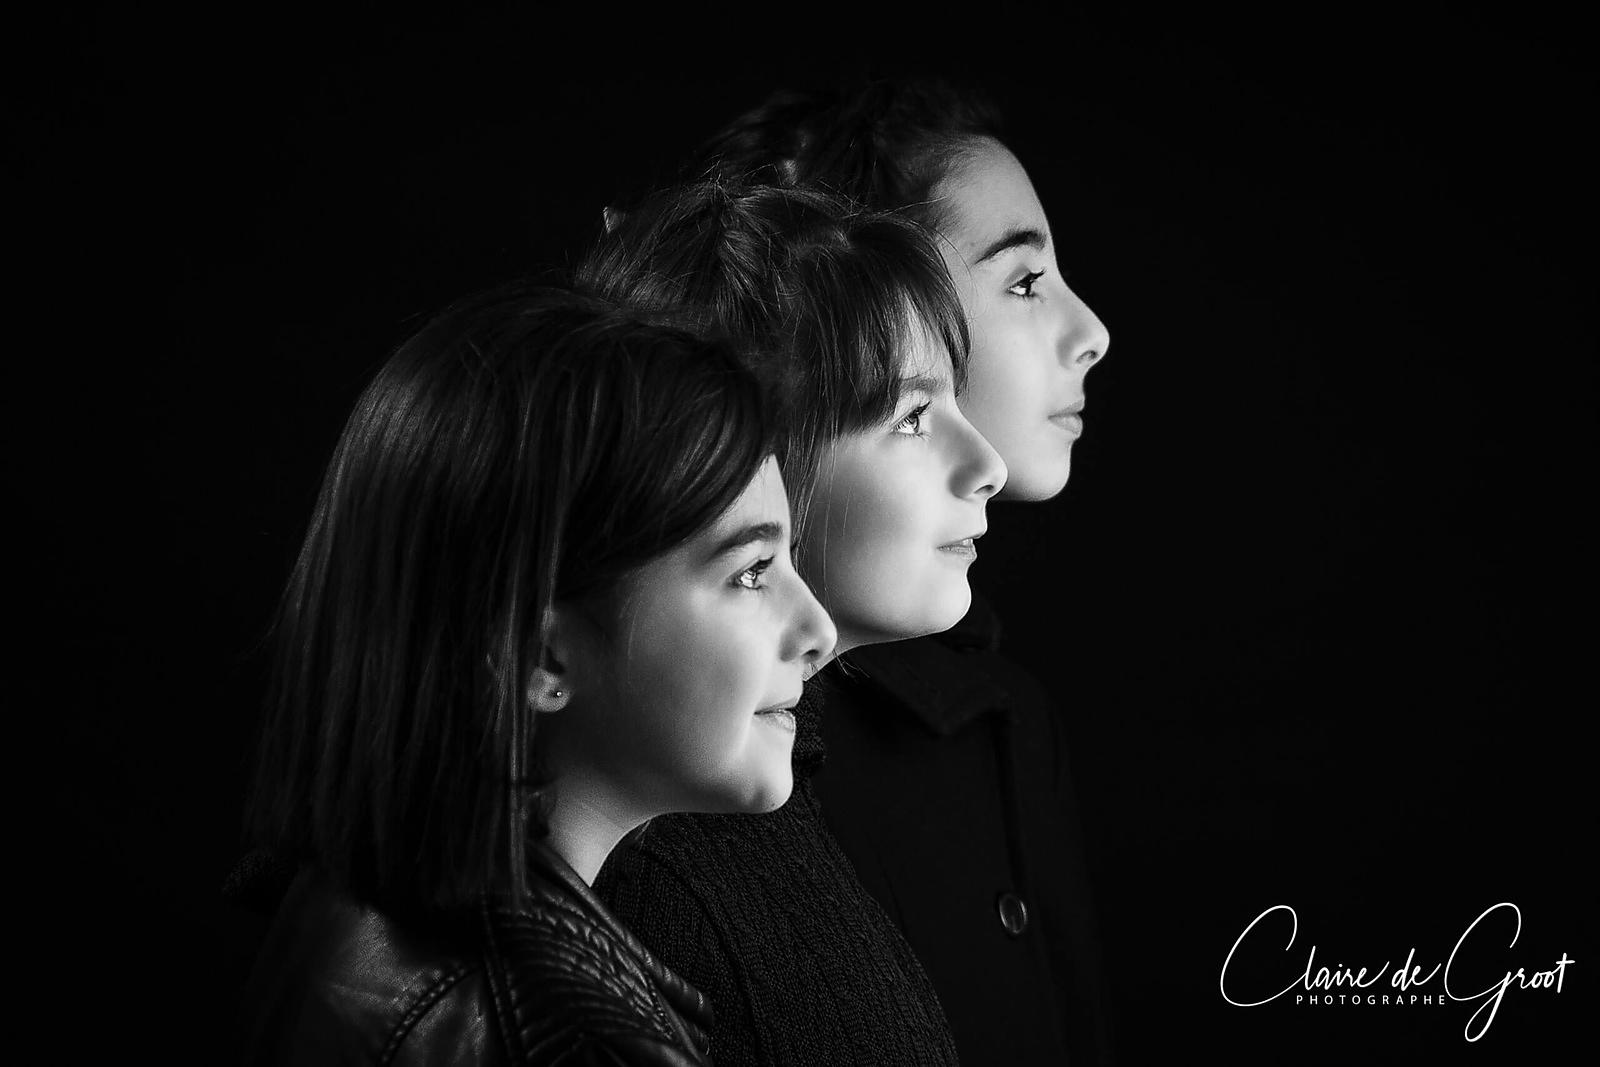 Studio Portrait of 3 sisters